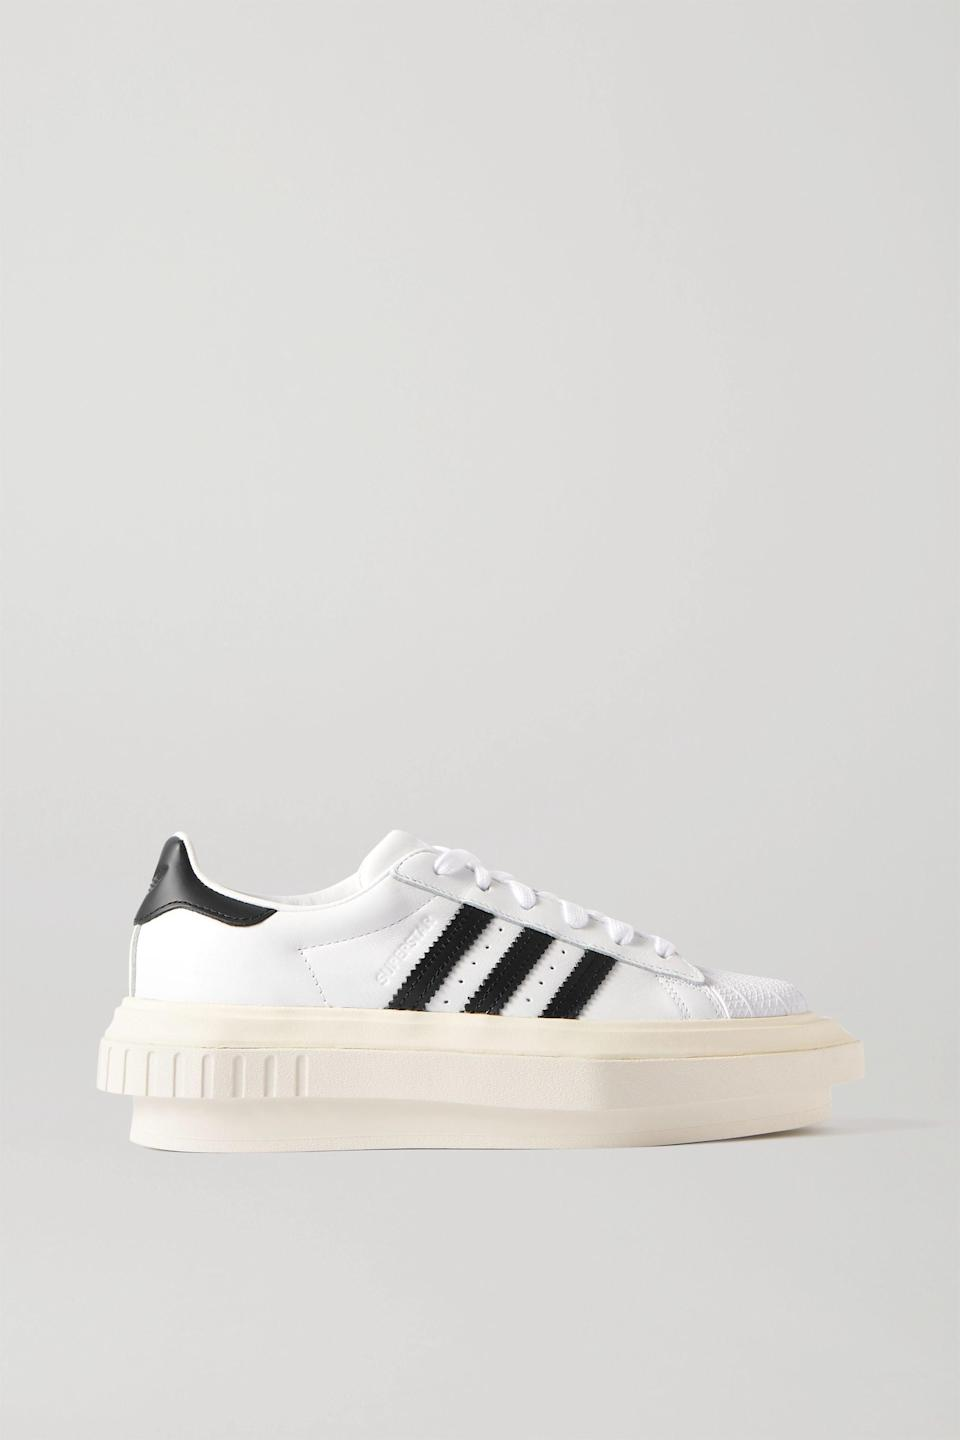 """<p><strong>adidas Originals</strong></p><p>net-a-porter.com</p><p><strong>$200.00</strong></p><p><a href=""""https://go.redirectingat.com?id=74968X1596630&url=https%3A%2F%2Fwww.net-a-porter.com%2Fen-us%2Fshop%2Fproduct%2Fadidas-originals%2Fbeyonce-superstar-leather-platform-sneakers%2F1262191&sref=https%3A%2F%2Fwww.townandcountrymag.com%2Fstyle%2Ffashion-trends%2Fg35155148%2F2021-shoe-trends%2F"""" rel=""""nofollow noopener"""" target=""""_blank"""" data-ylk=""""slk:Shop Now"""" class=""""link rapid-noclick-resp"""">Shop Now</a></p>"""